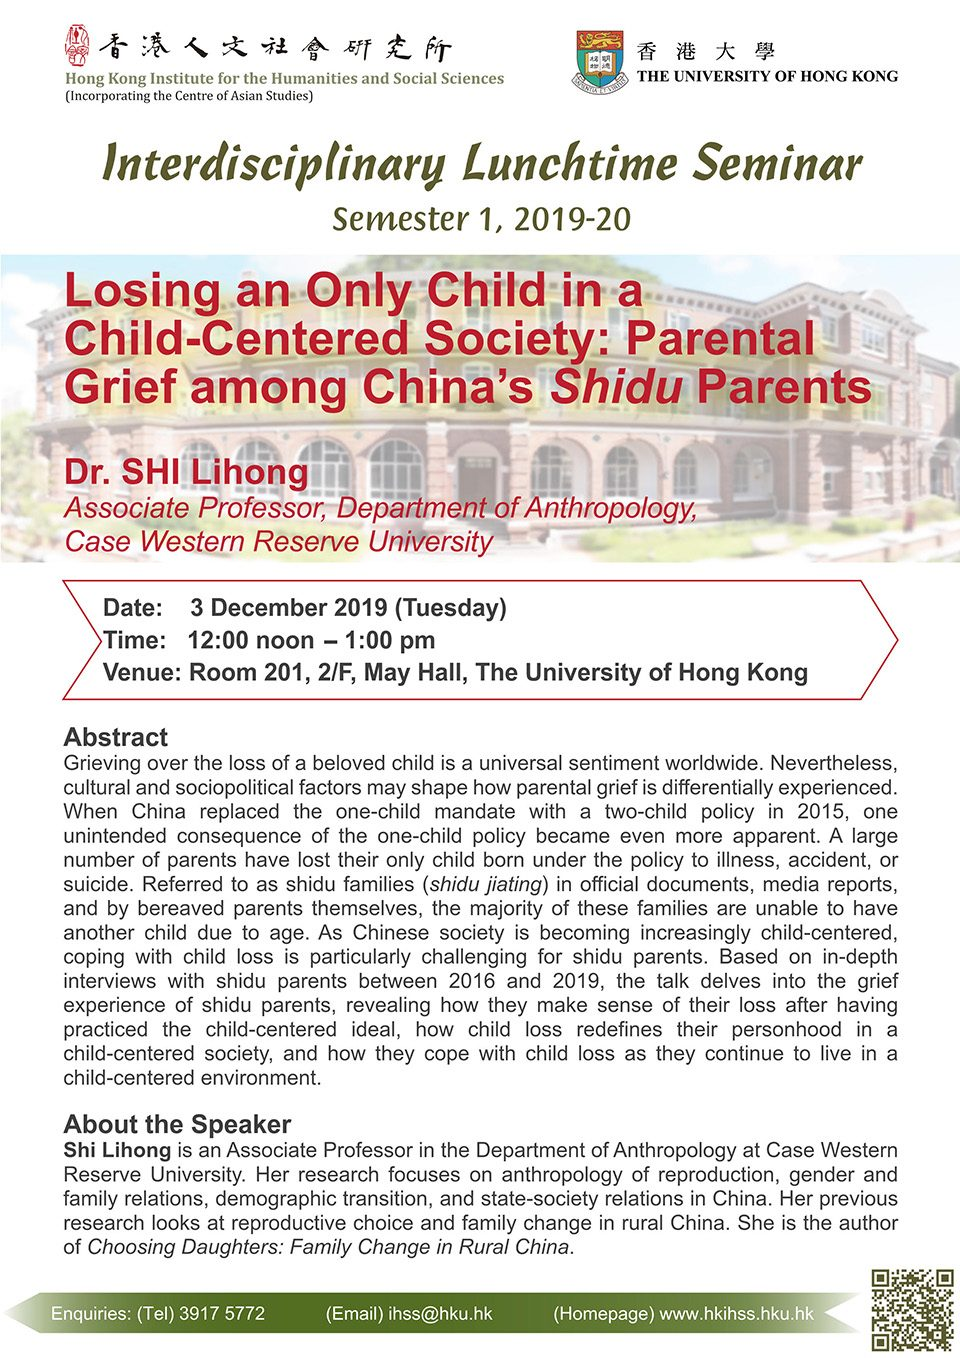 "Interdisciplinary Lunchtime Seminar on ""Losing an Only Child in a Child-Centered Society: Parental Grief among China's Shidu Parents"" by Dr. Shi Lihong (December 3, 2019)"